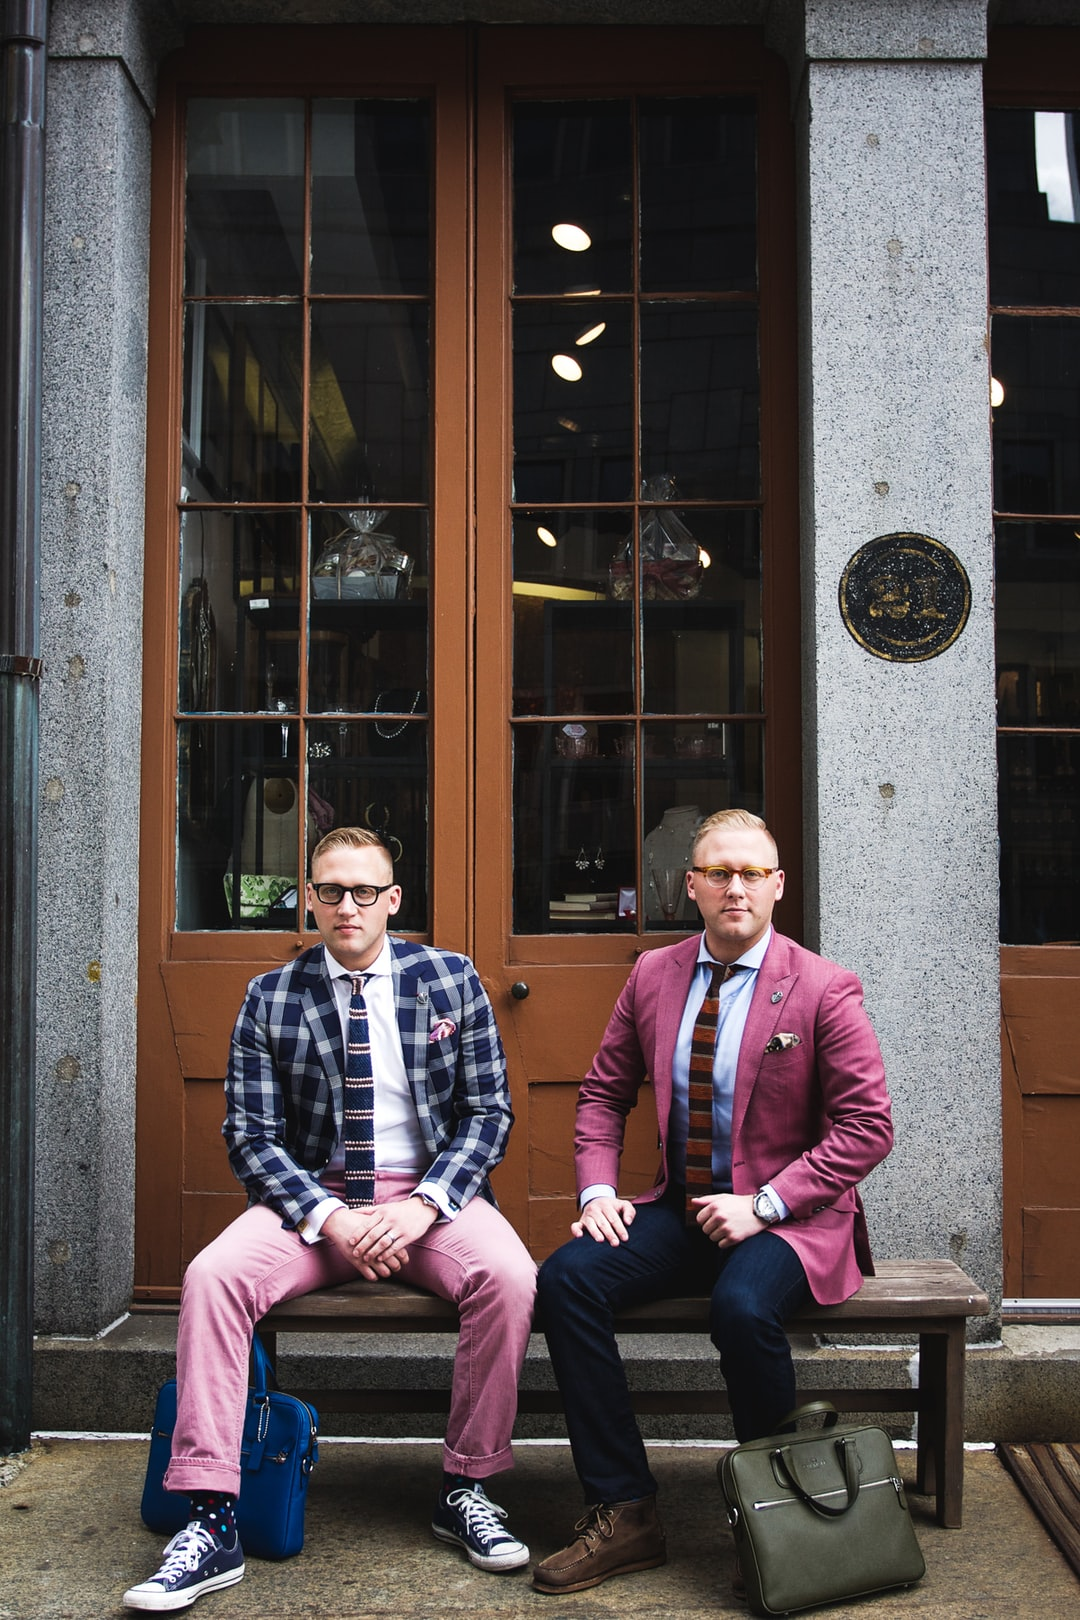 I stumbled on these two guys when I was in New York. I'm unsure whether they're related or not, however, I told myself that I need to take a photo of these two because their unique style was really cool! Thank you to whoever you two are and I hope you're both well.